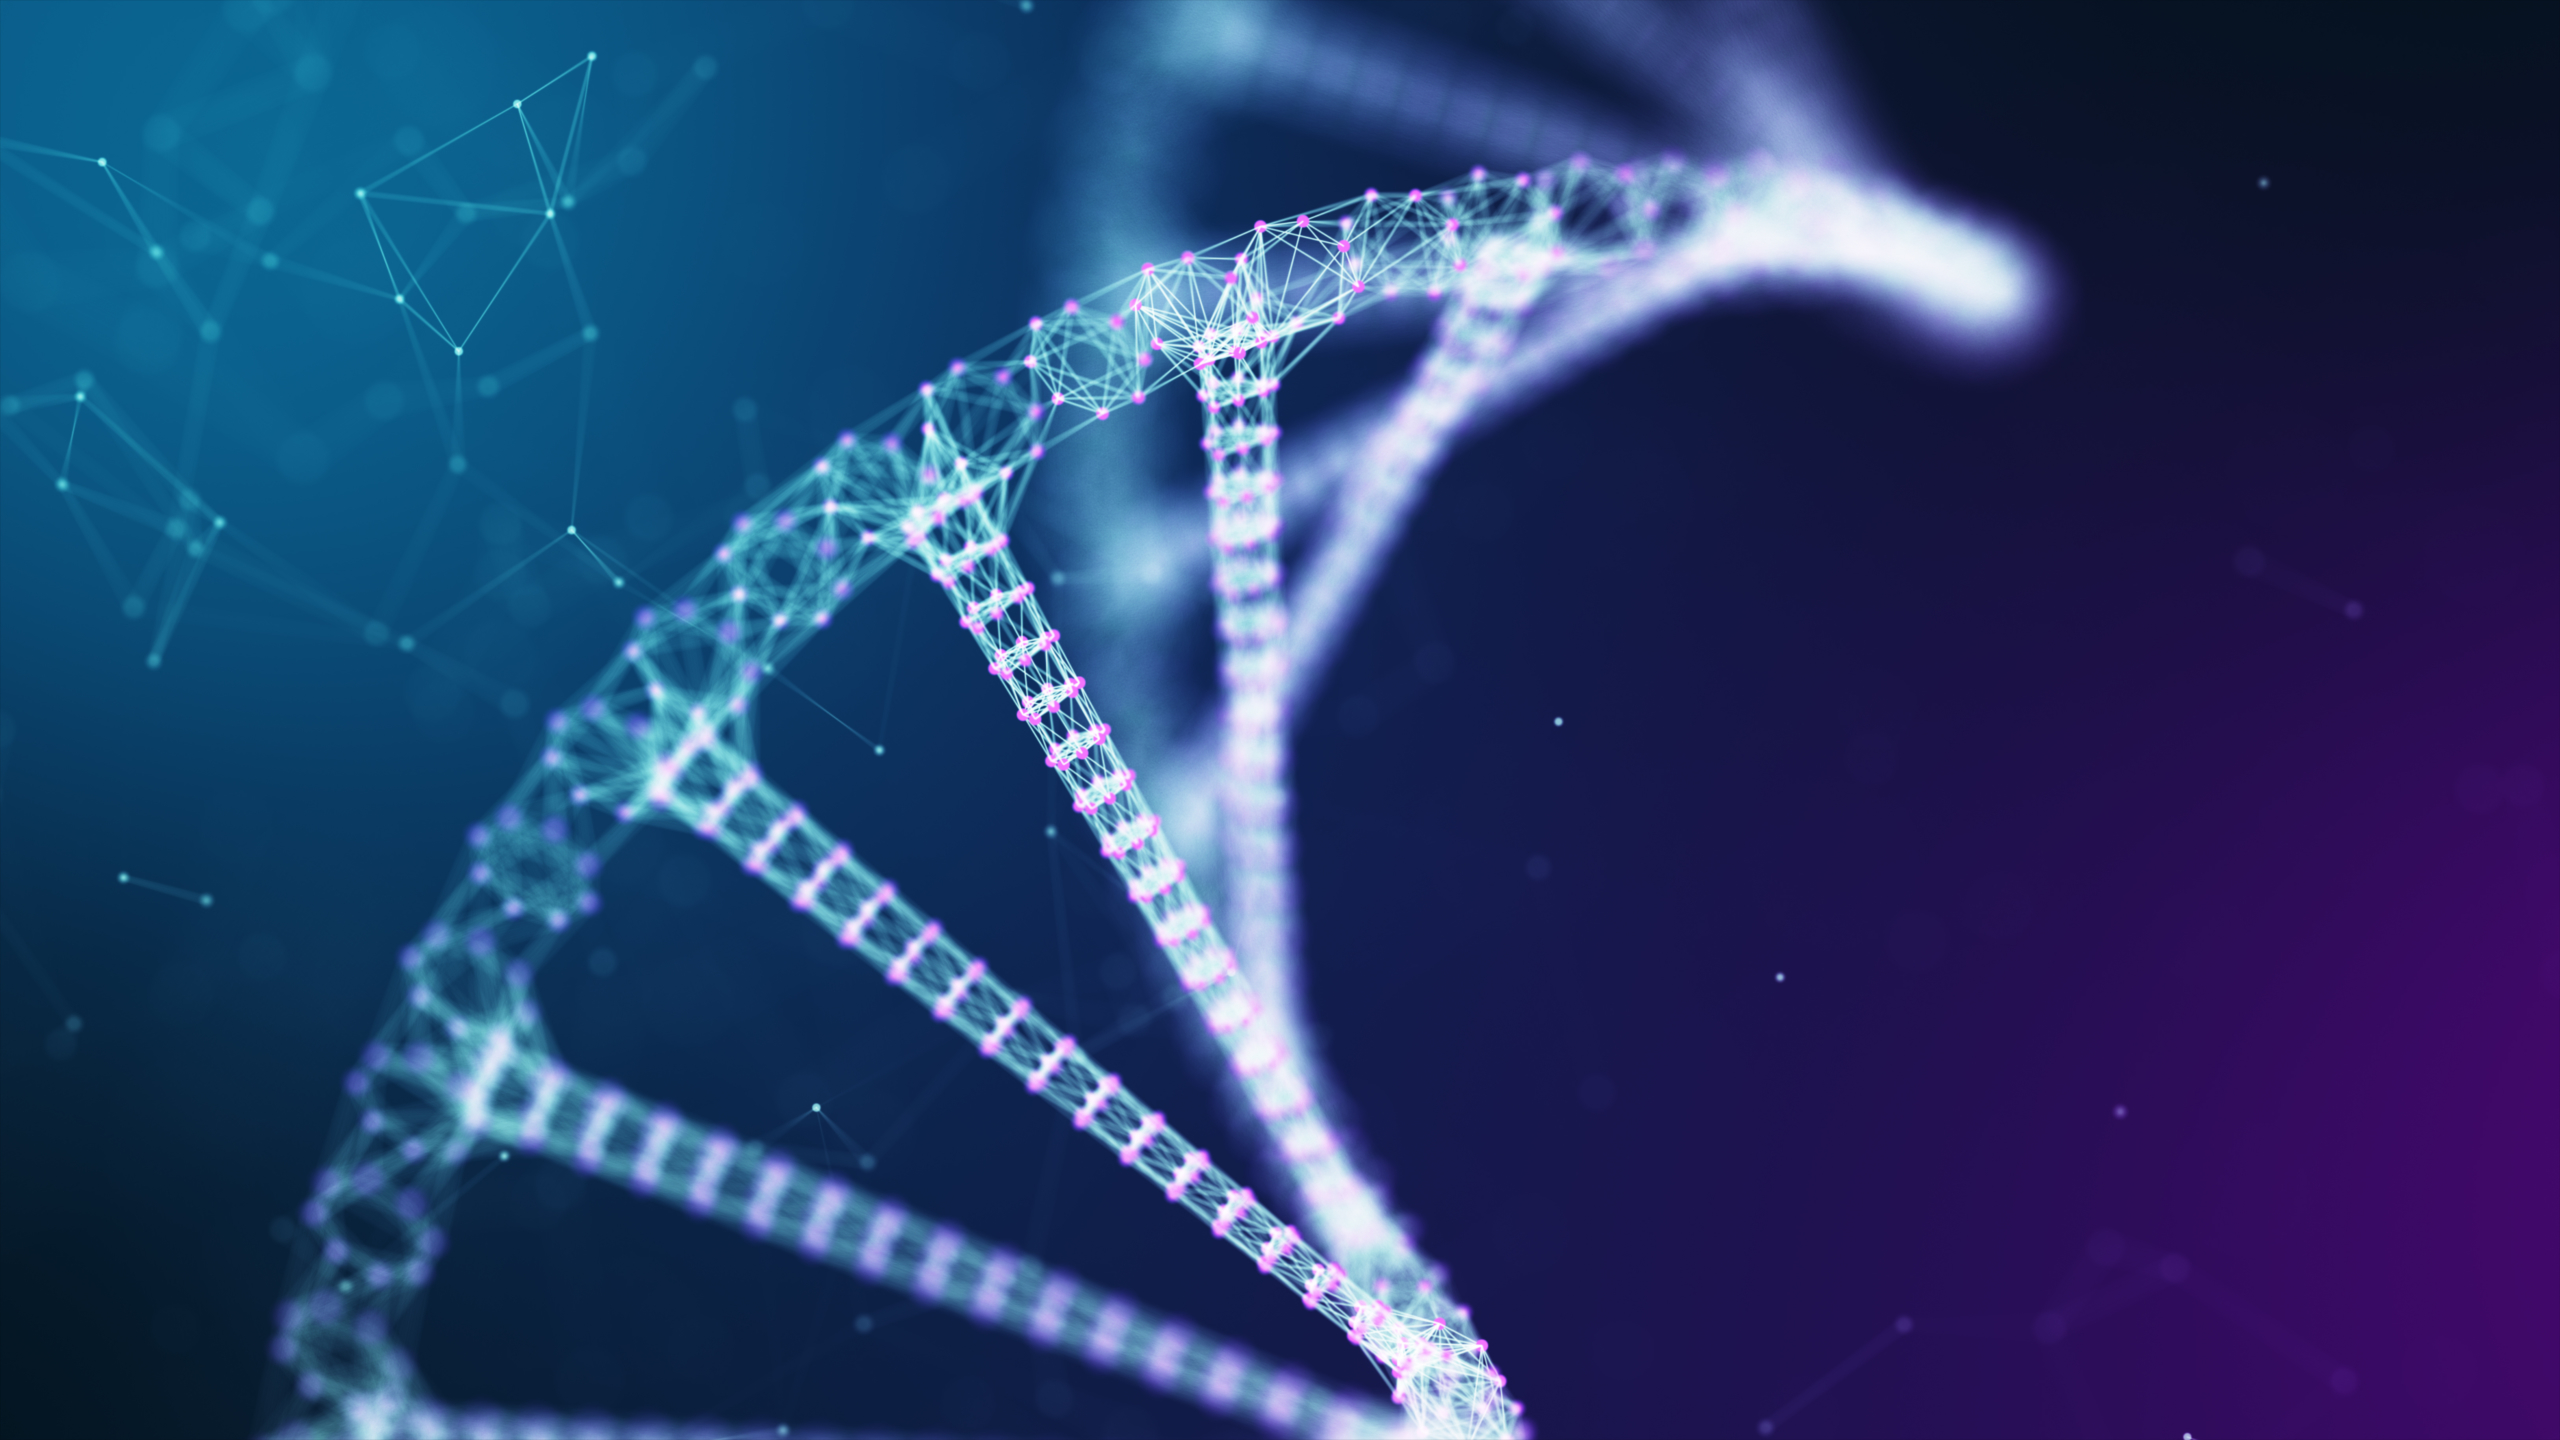 PERSONALIZED MEDICINE AND FAST GENOMIC DATA CLEANING